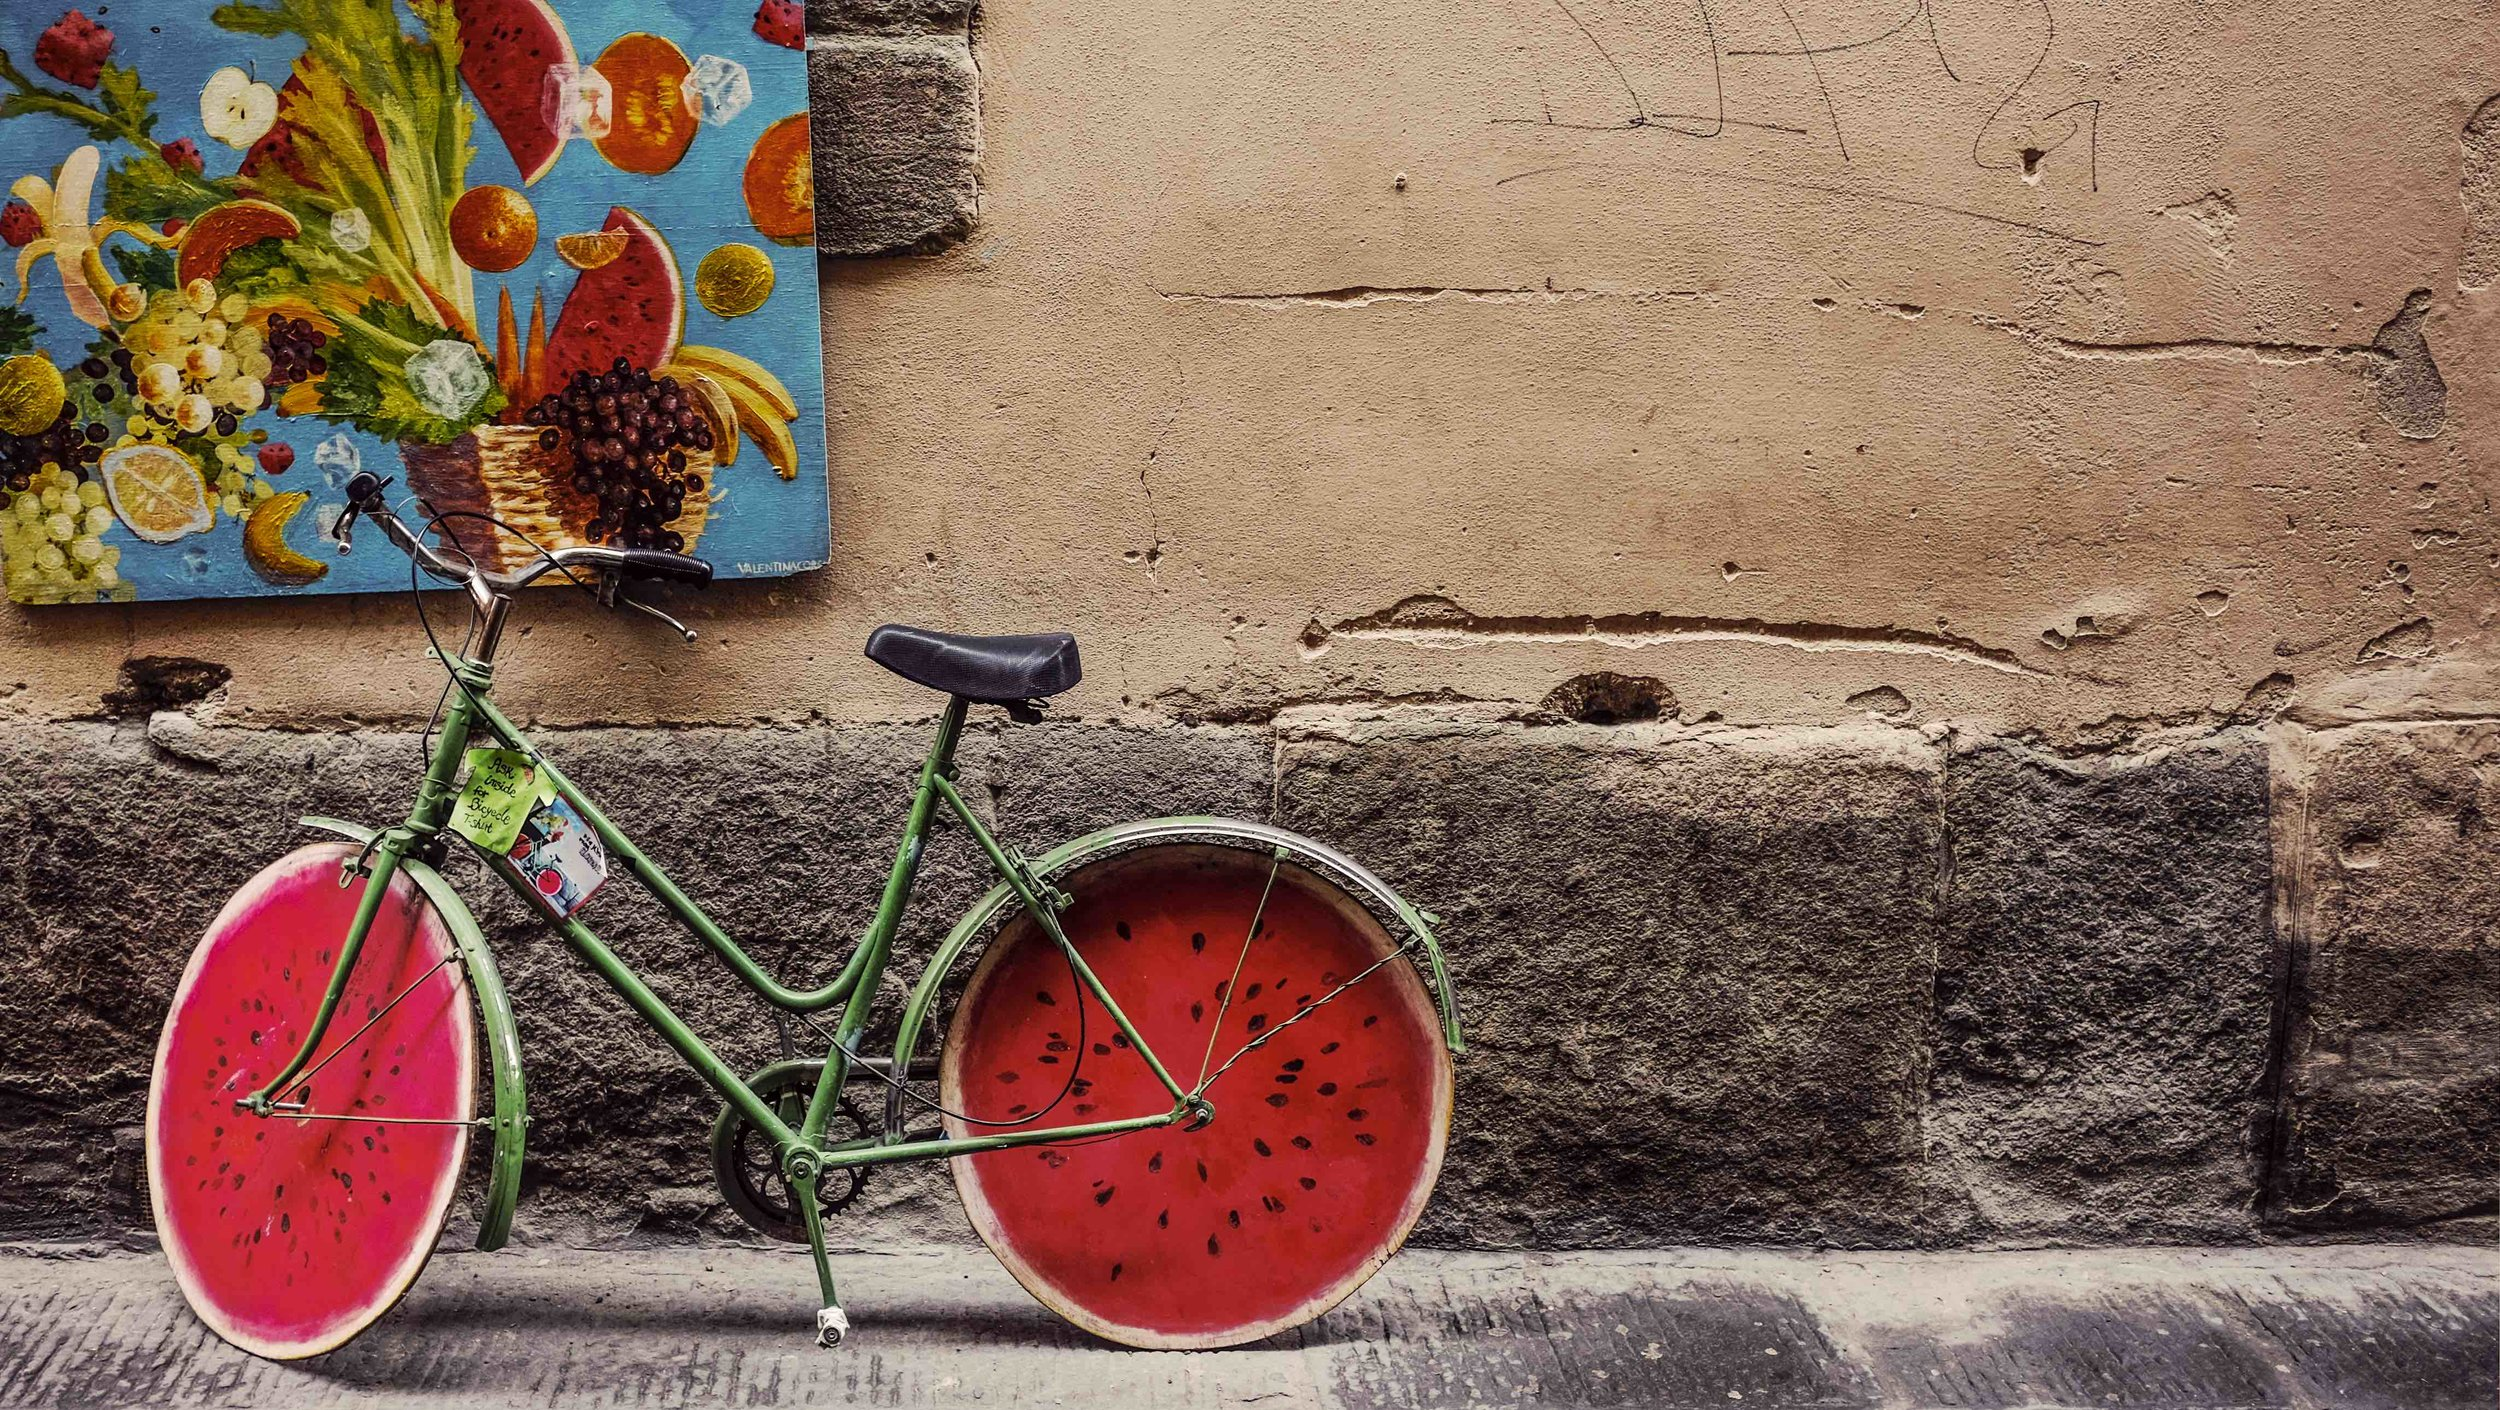 watermelon bike florence.jpg